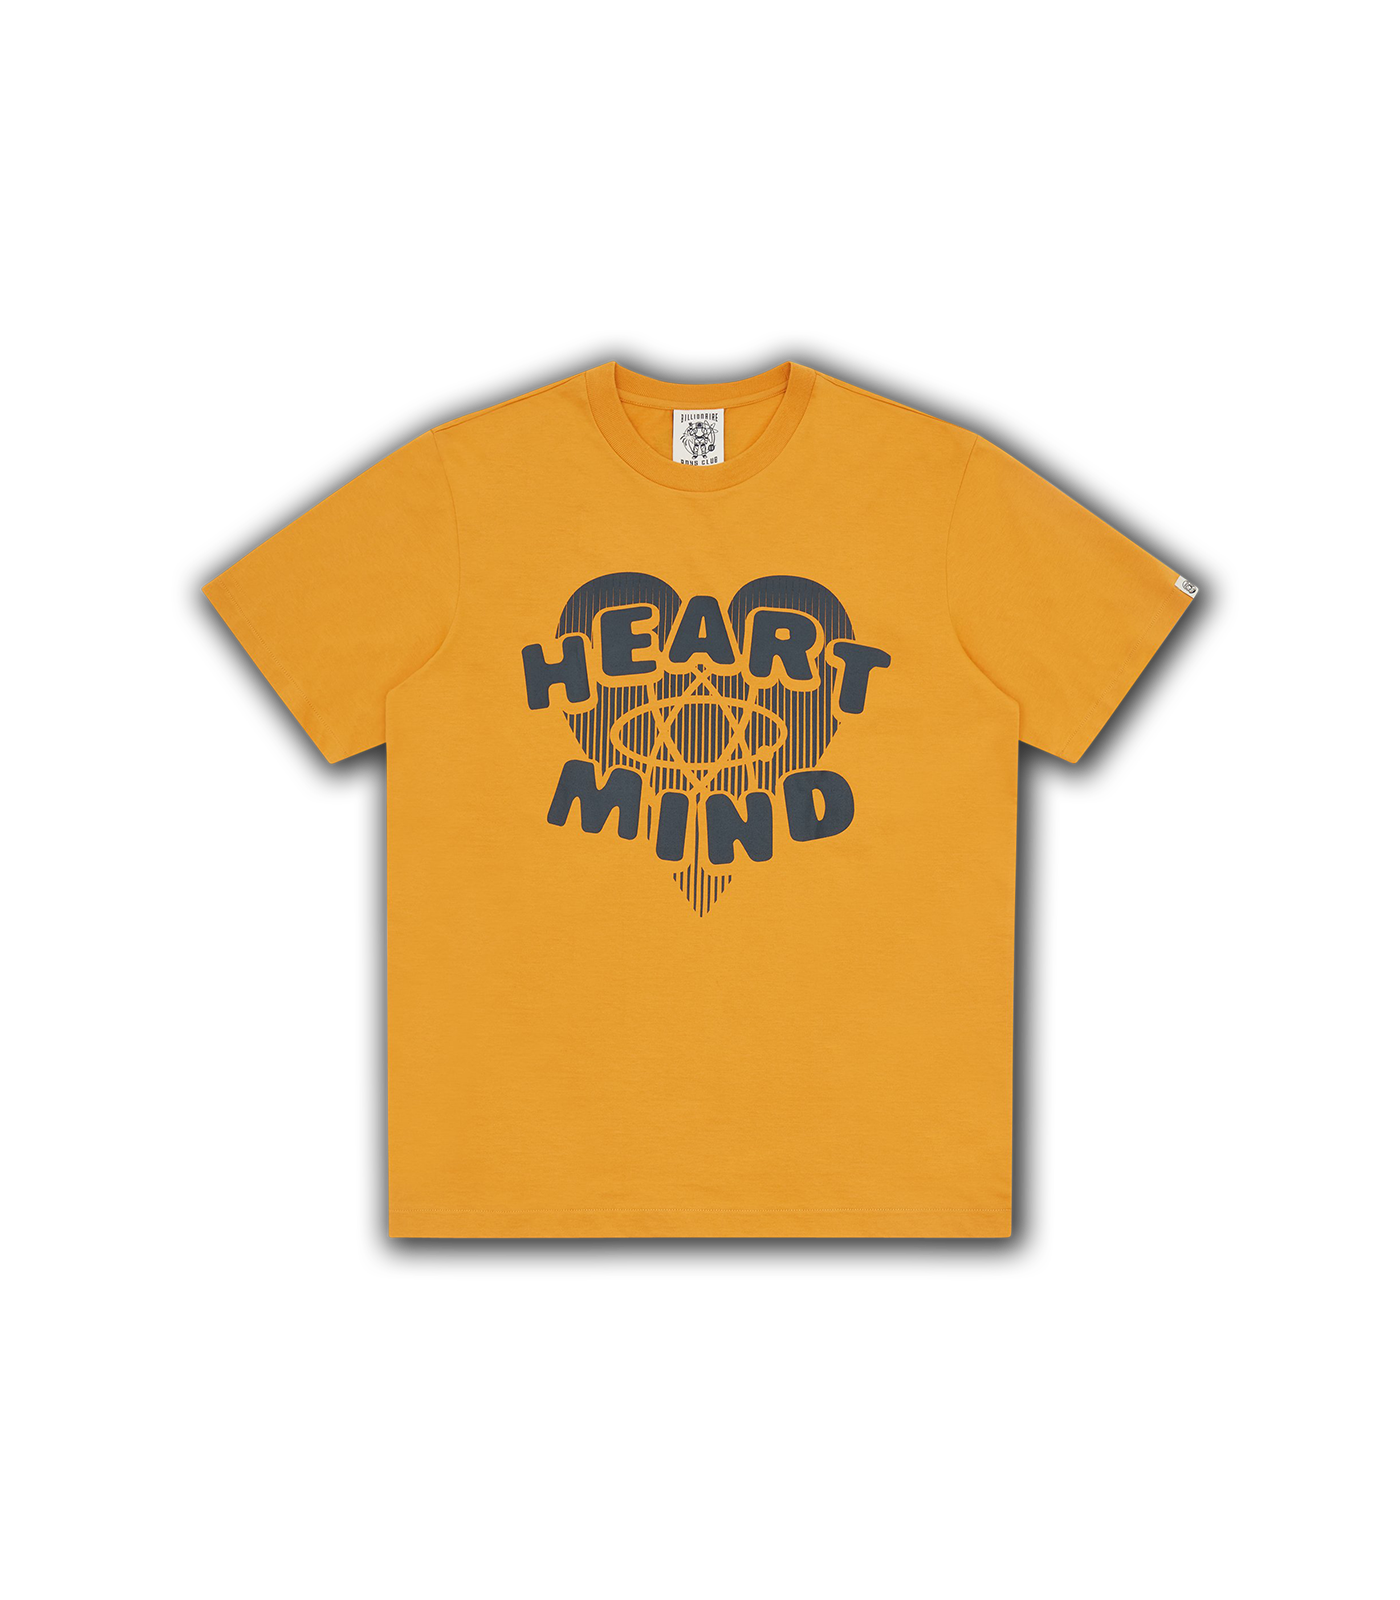 HEART & MIND GRAPHIC T-SHIRT - YELLOW